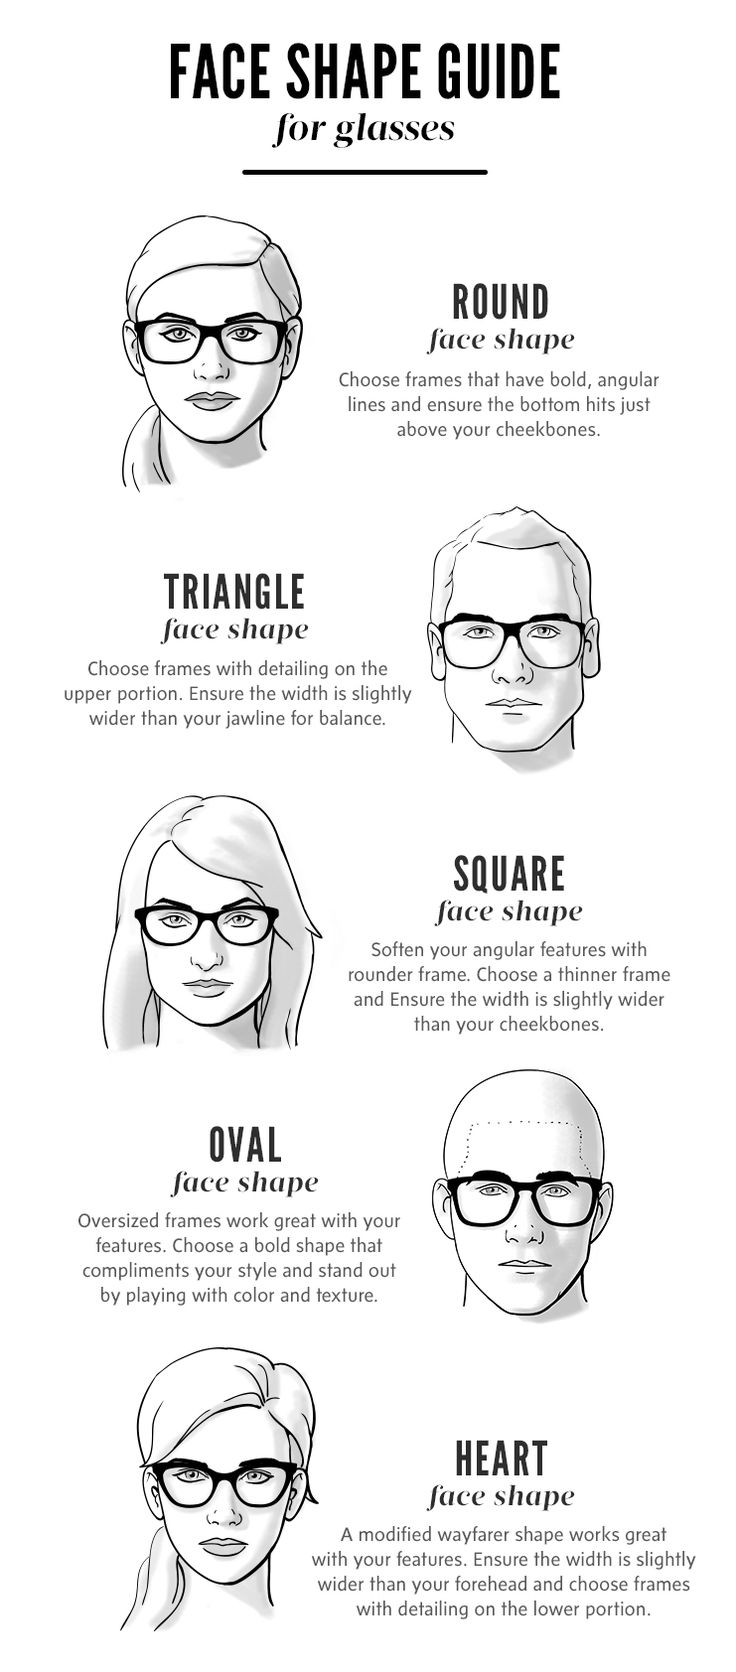 Glasses face shape guide